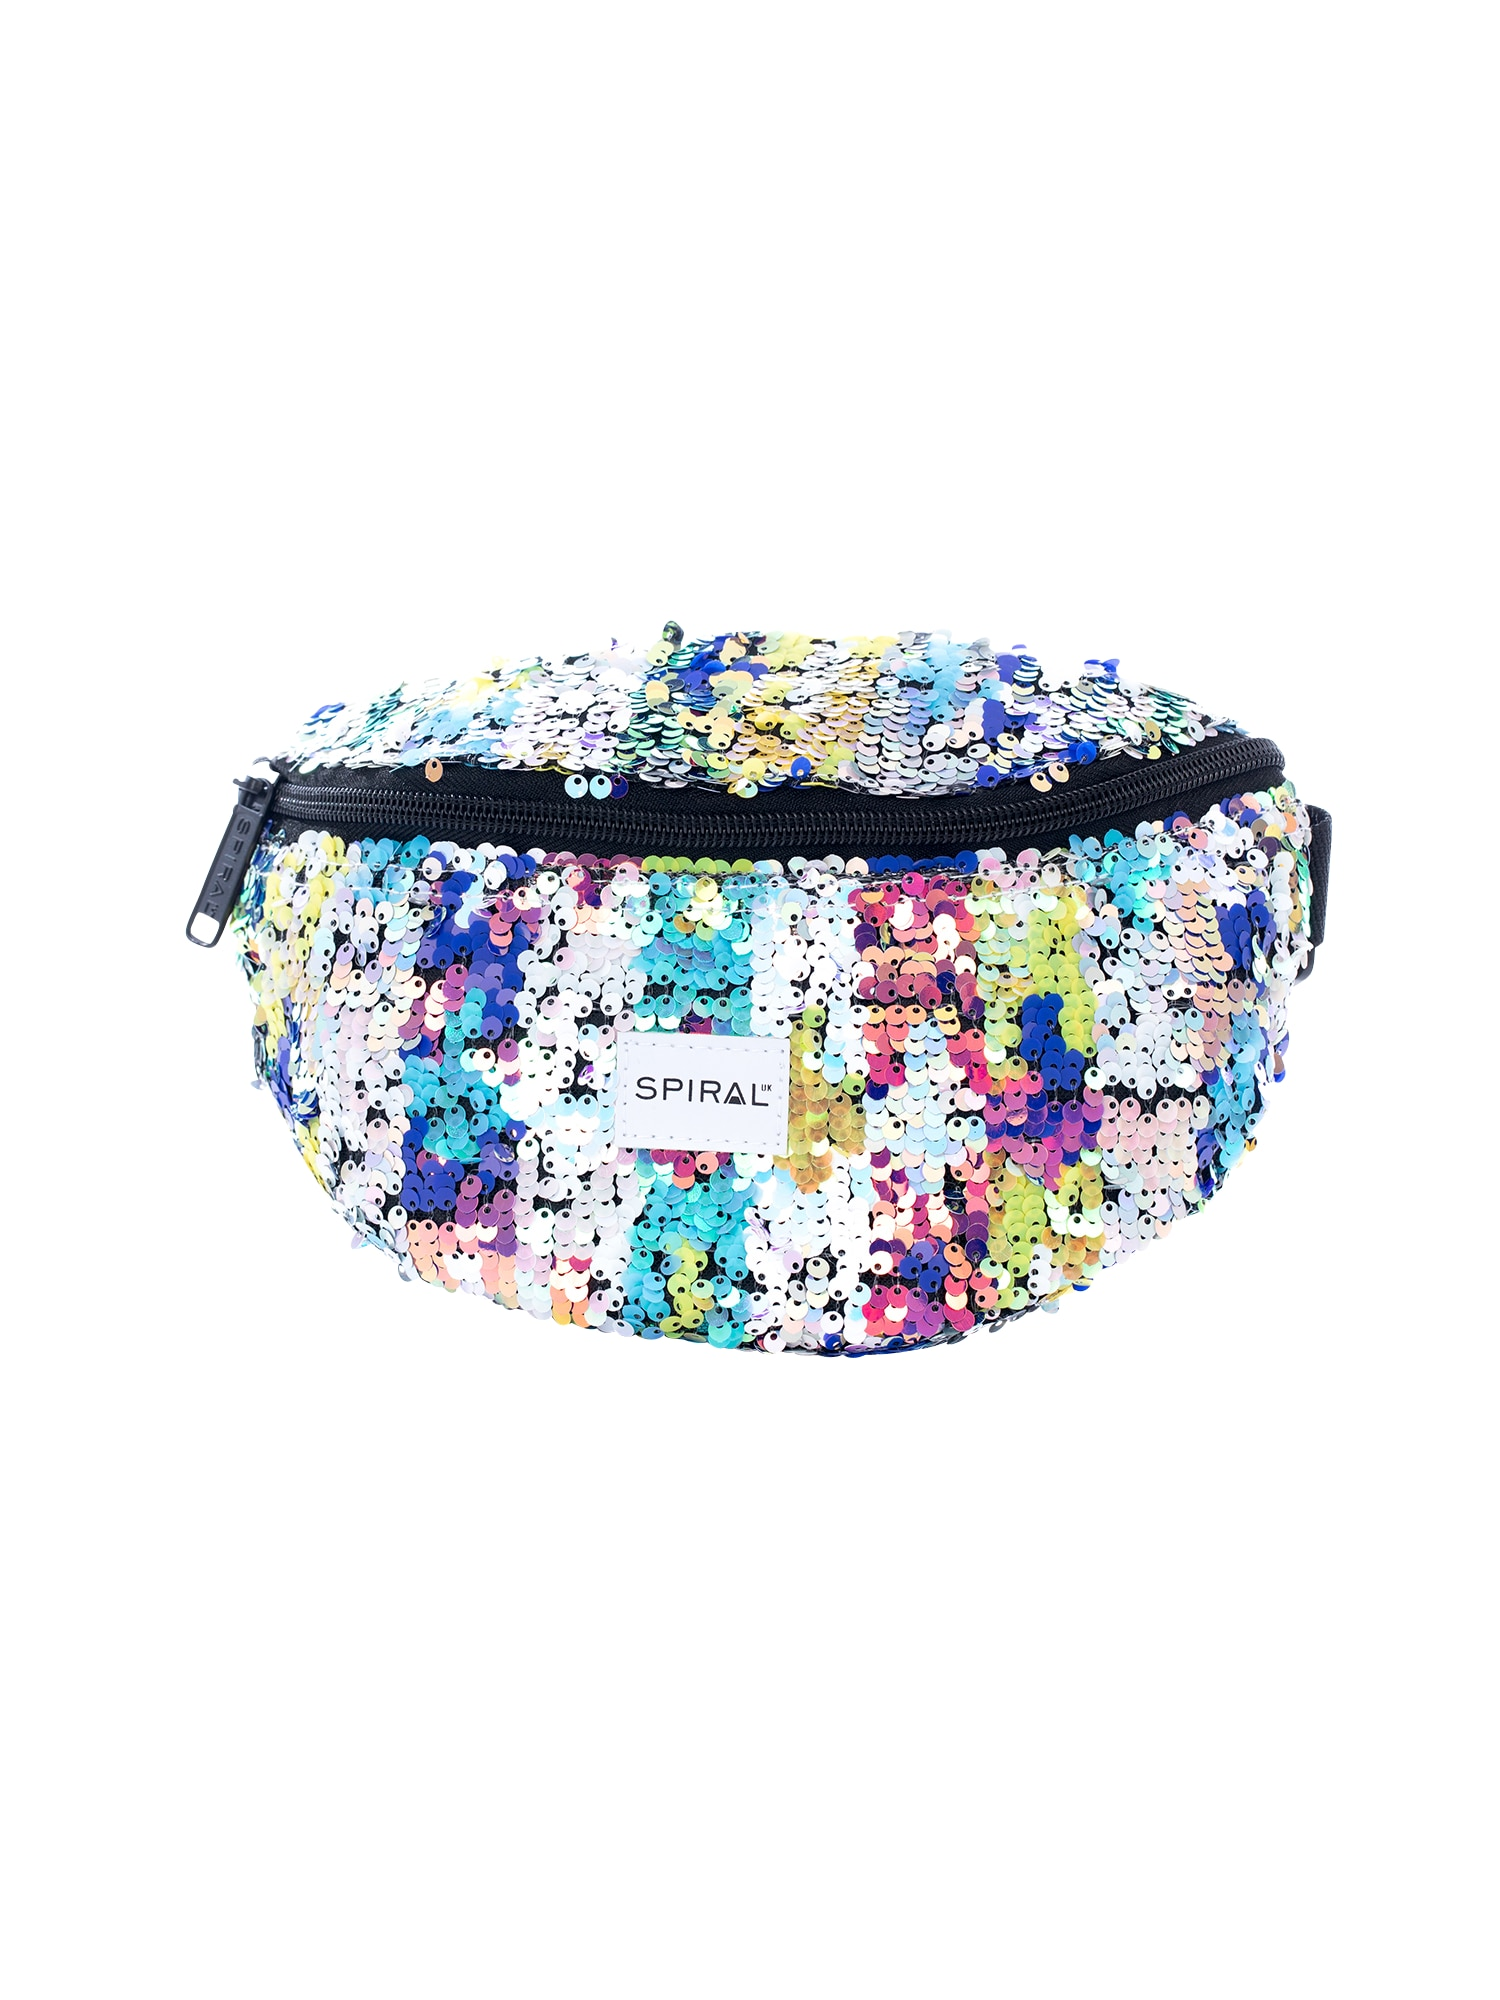 Ledvinka BUM BAG 3 mix barev SPIRAL